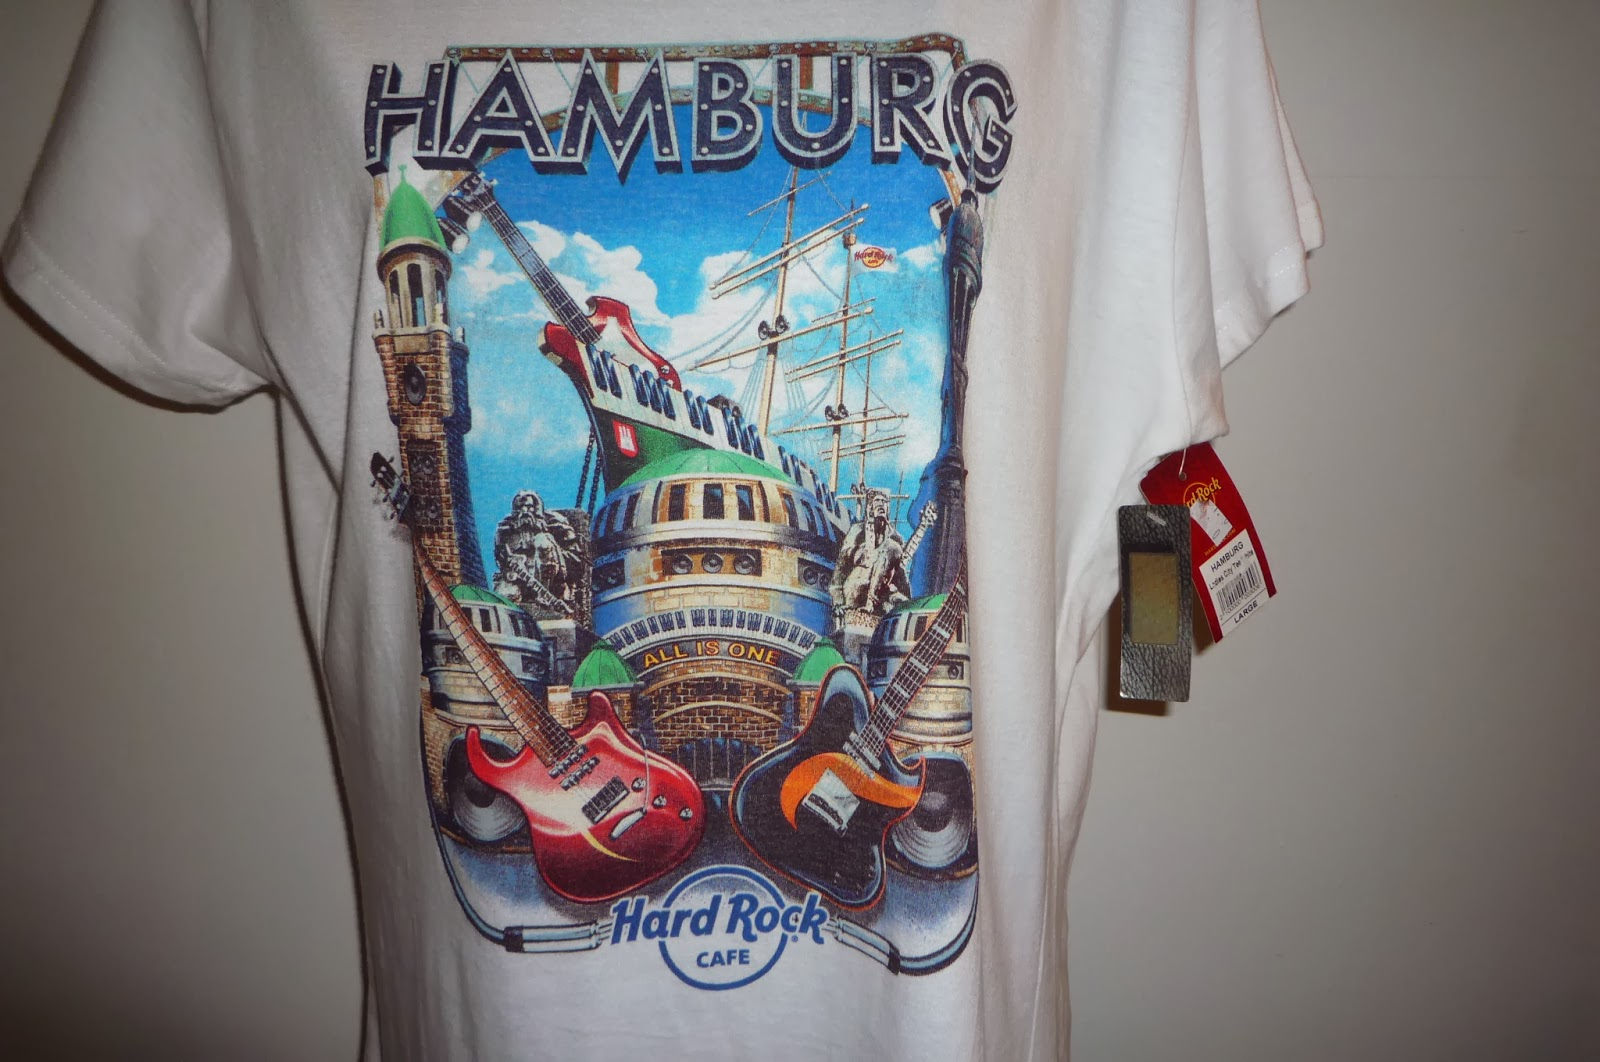 busybeeroom welcomes you hard rock cafe hamburg t shirt. Black Bedroom Furniture Sets. Home Design Ideas